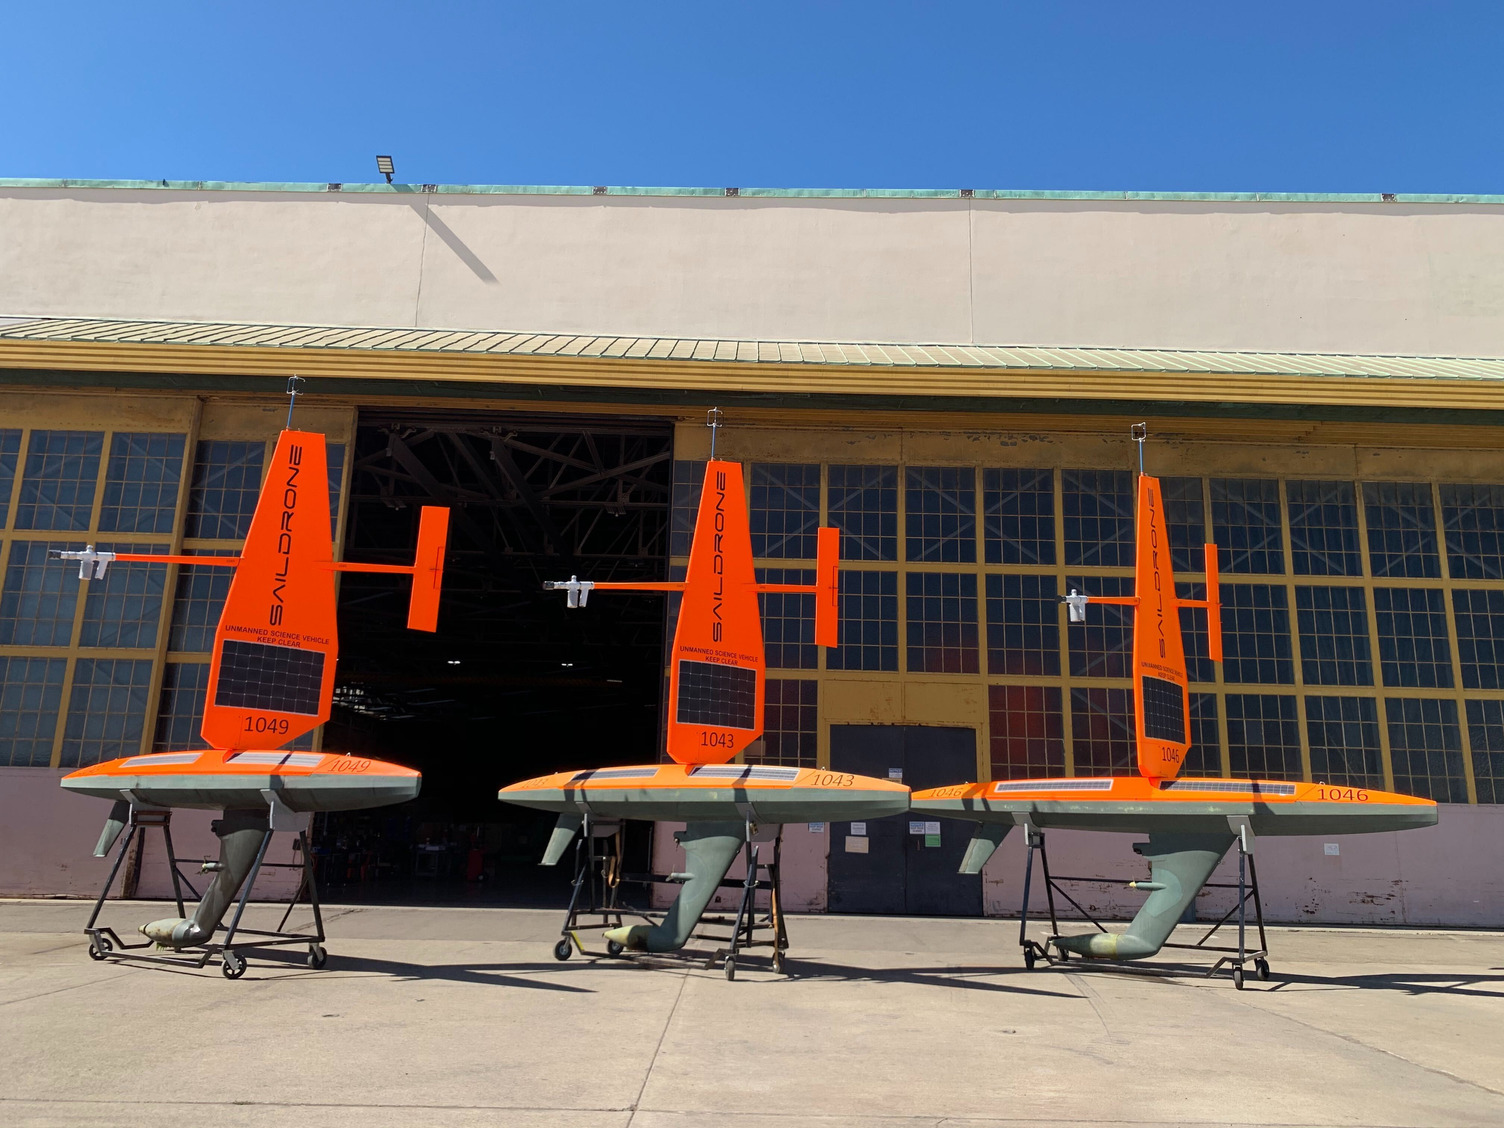 Photo of Saildrones on cradles next to a warehouse hanger.